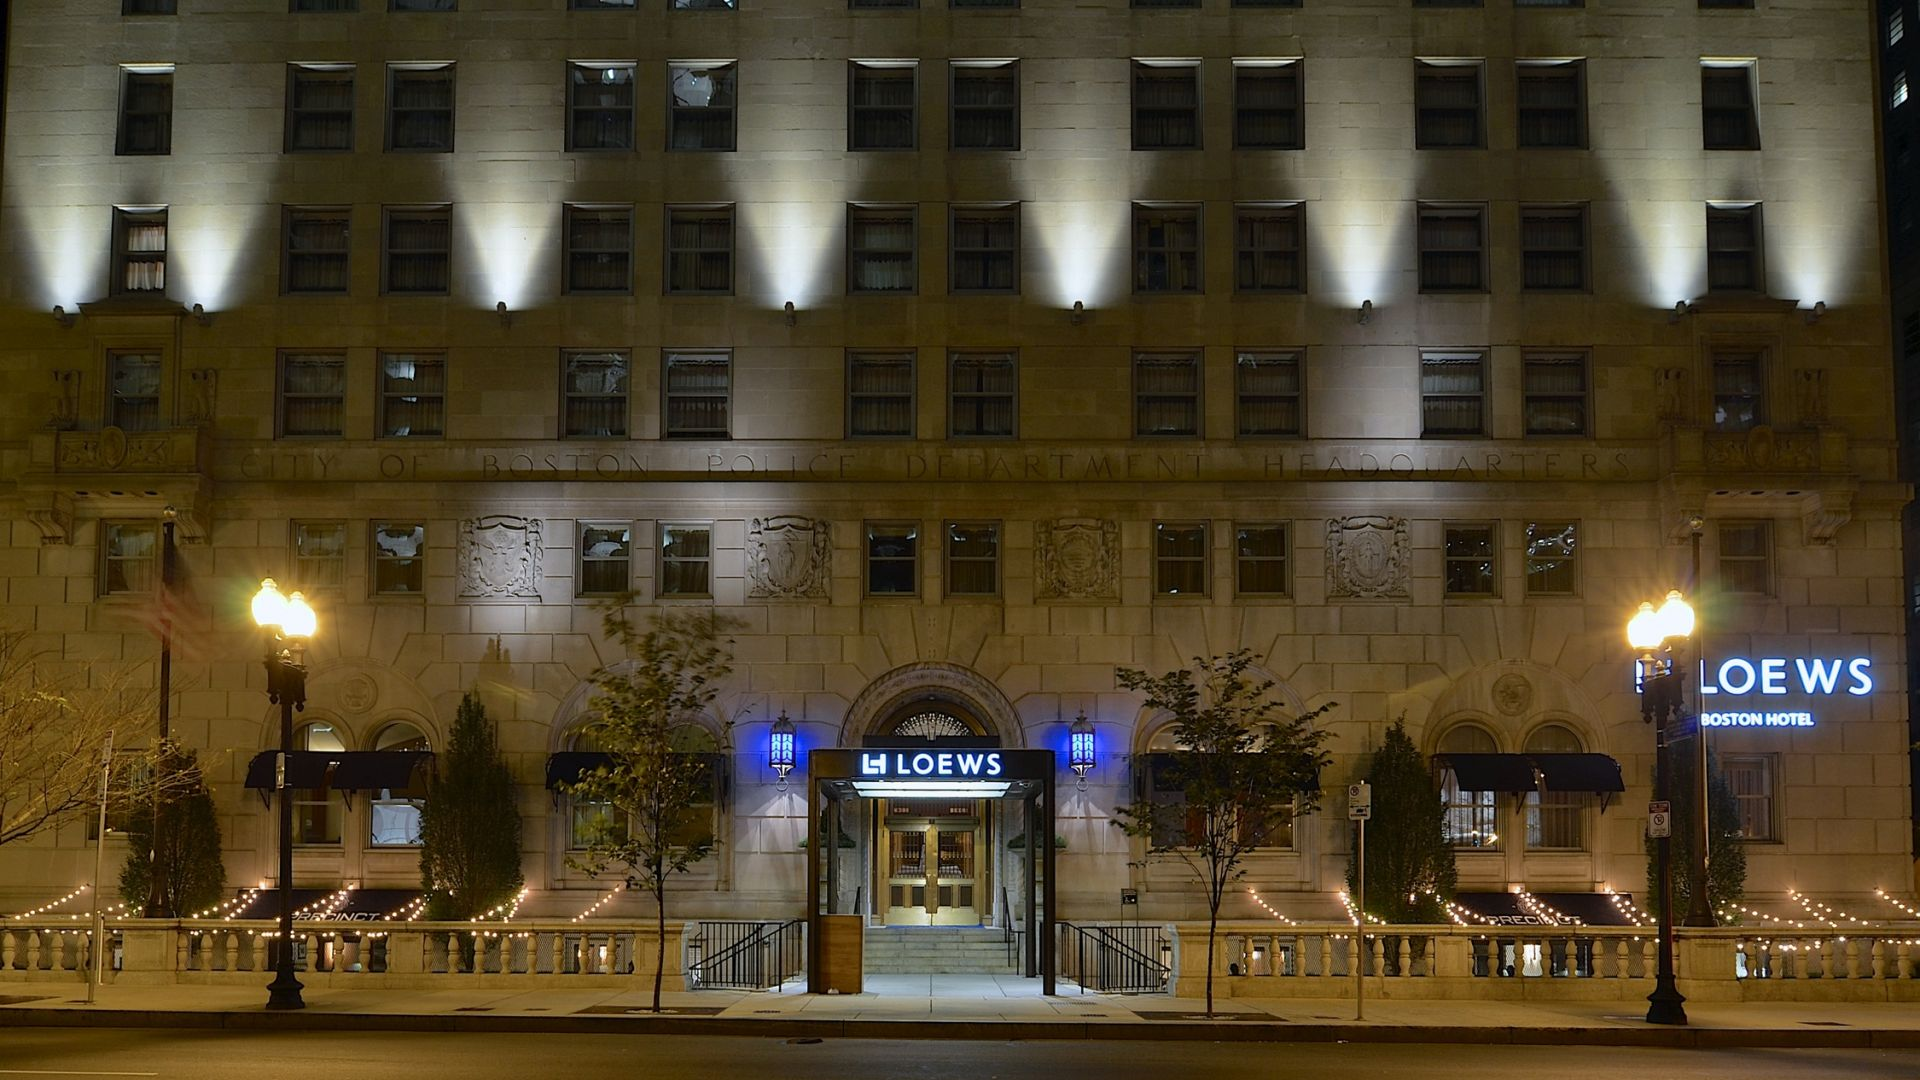 ... Massachusetts Night Exterior of Loews Boston Hotel ...